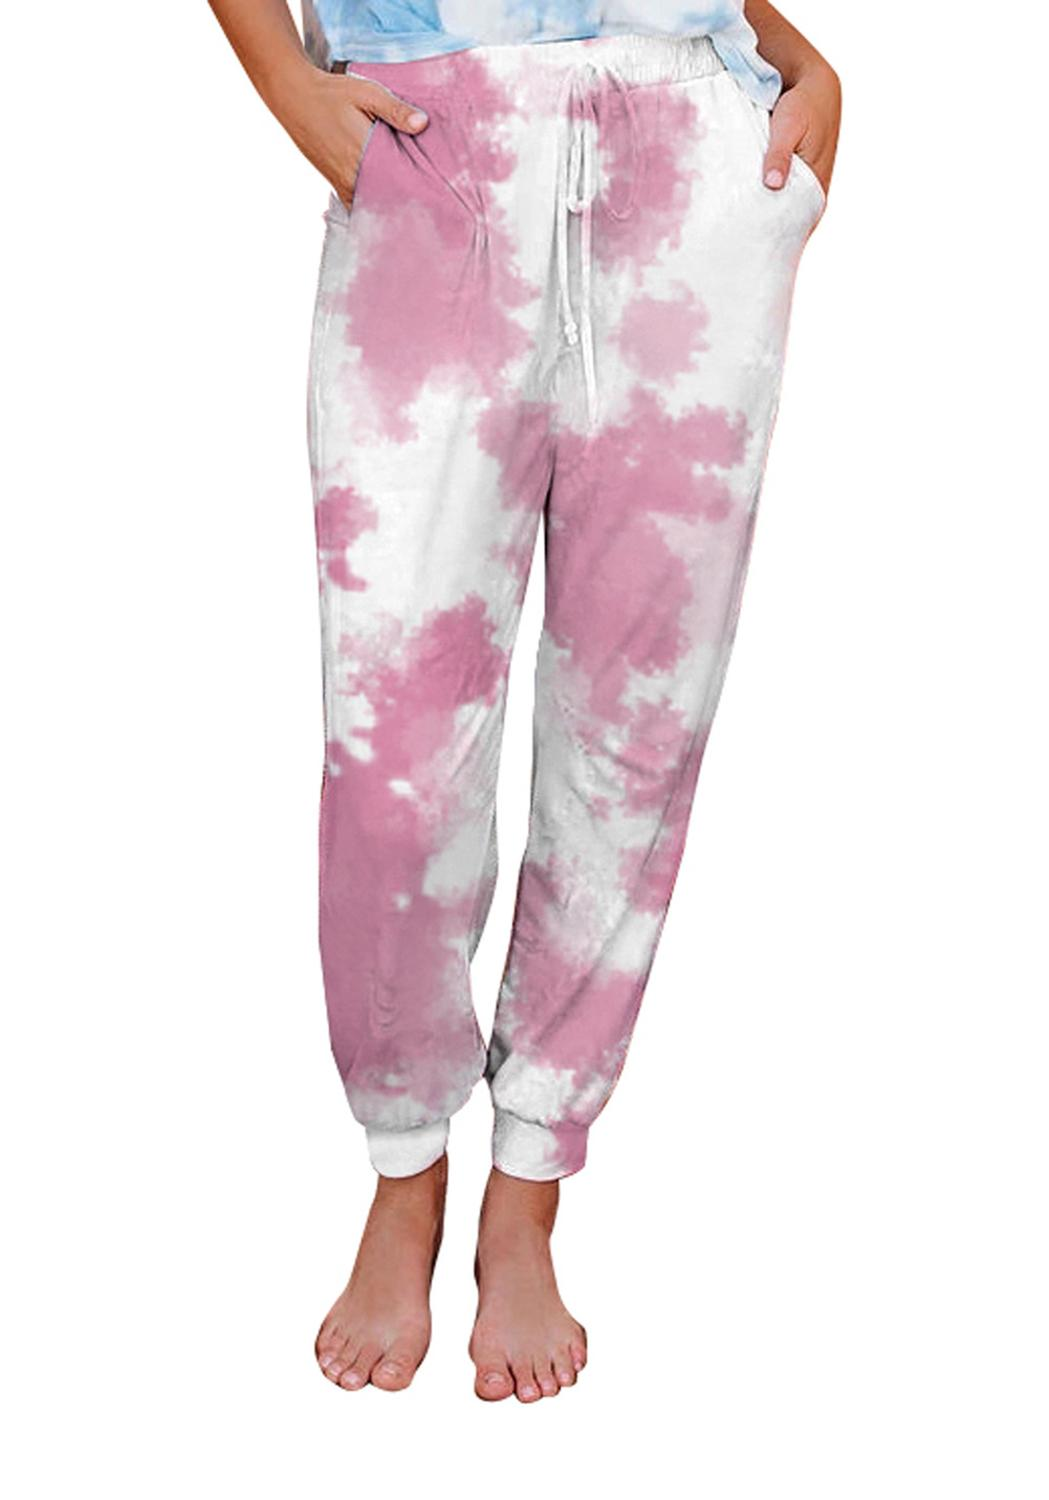 Women Wardrobe Casual Long Pants Tie Dye Print Drawstring Side Pockets Jogging Sweatpants